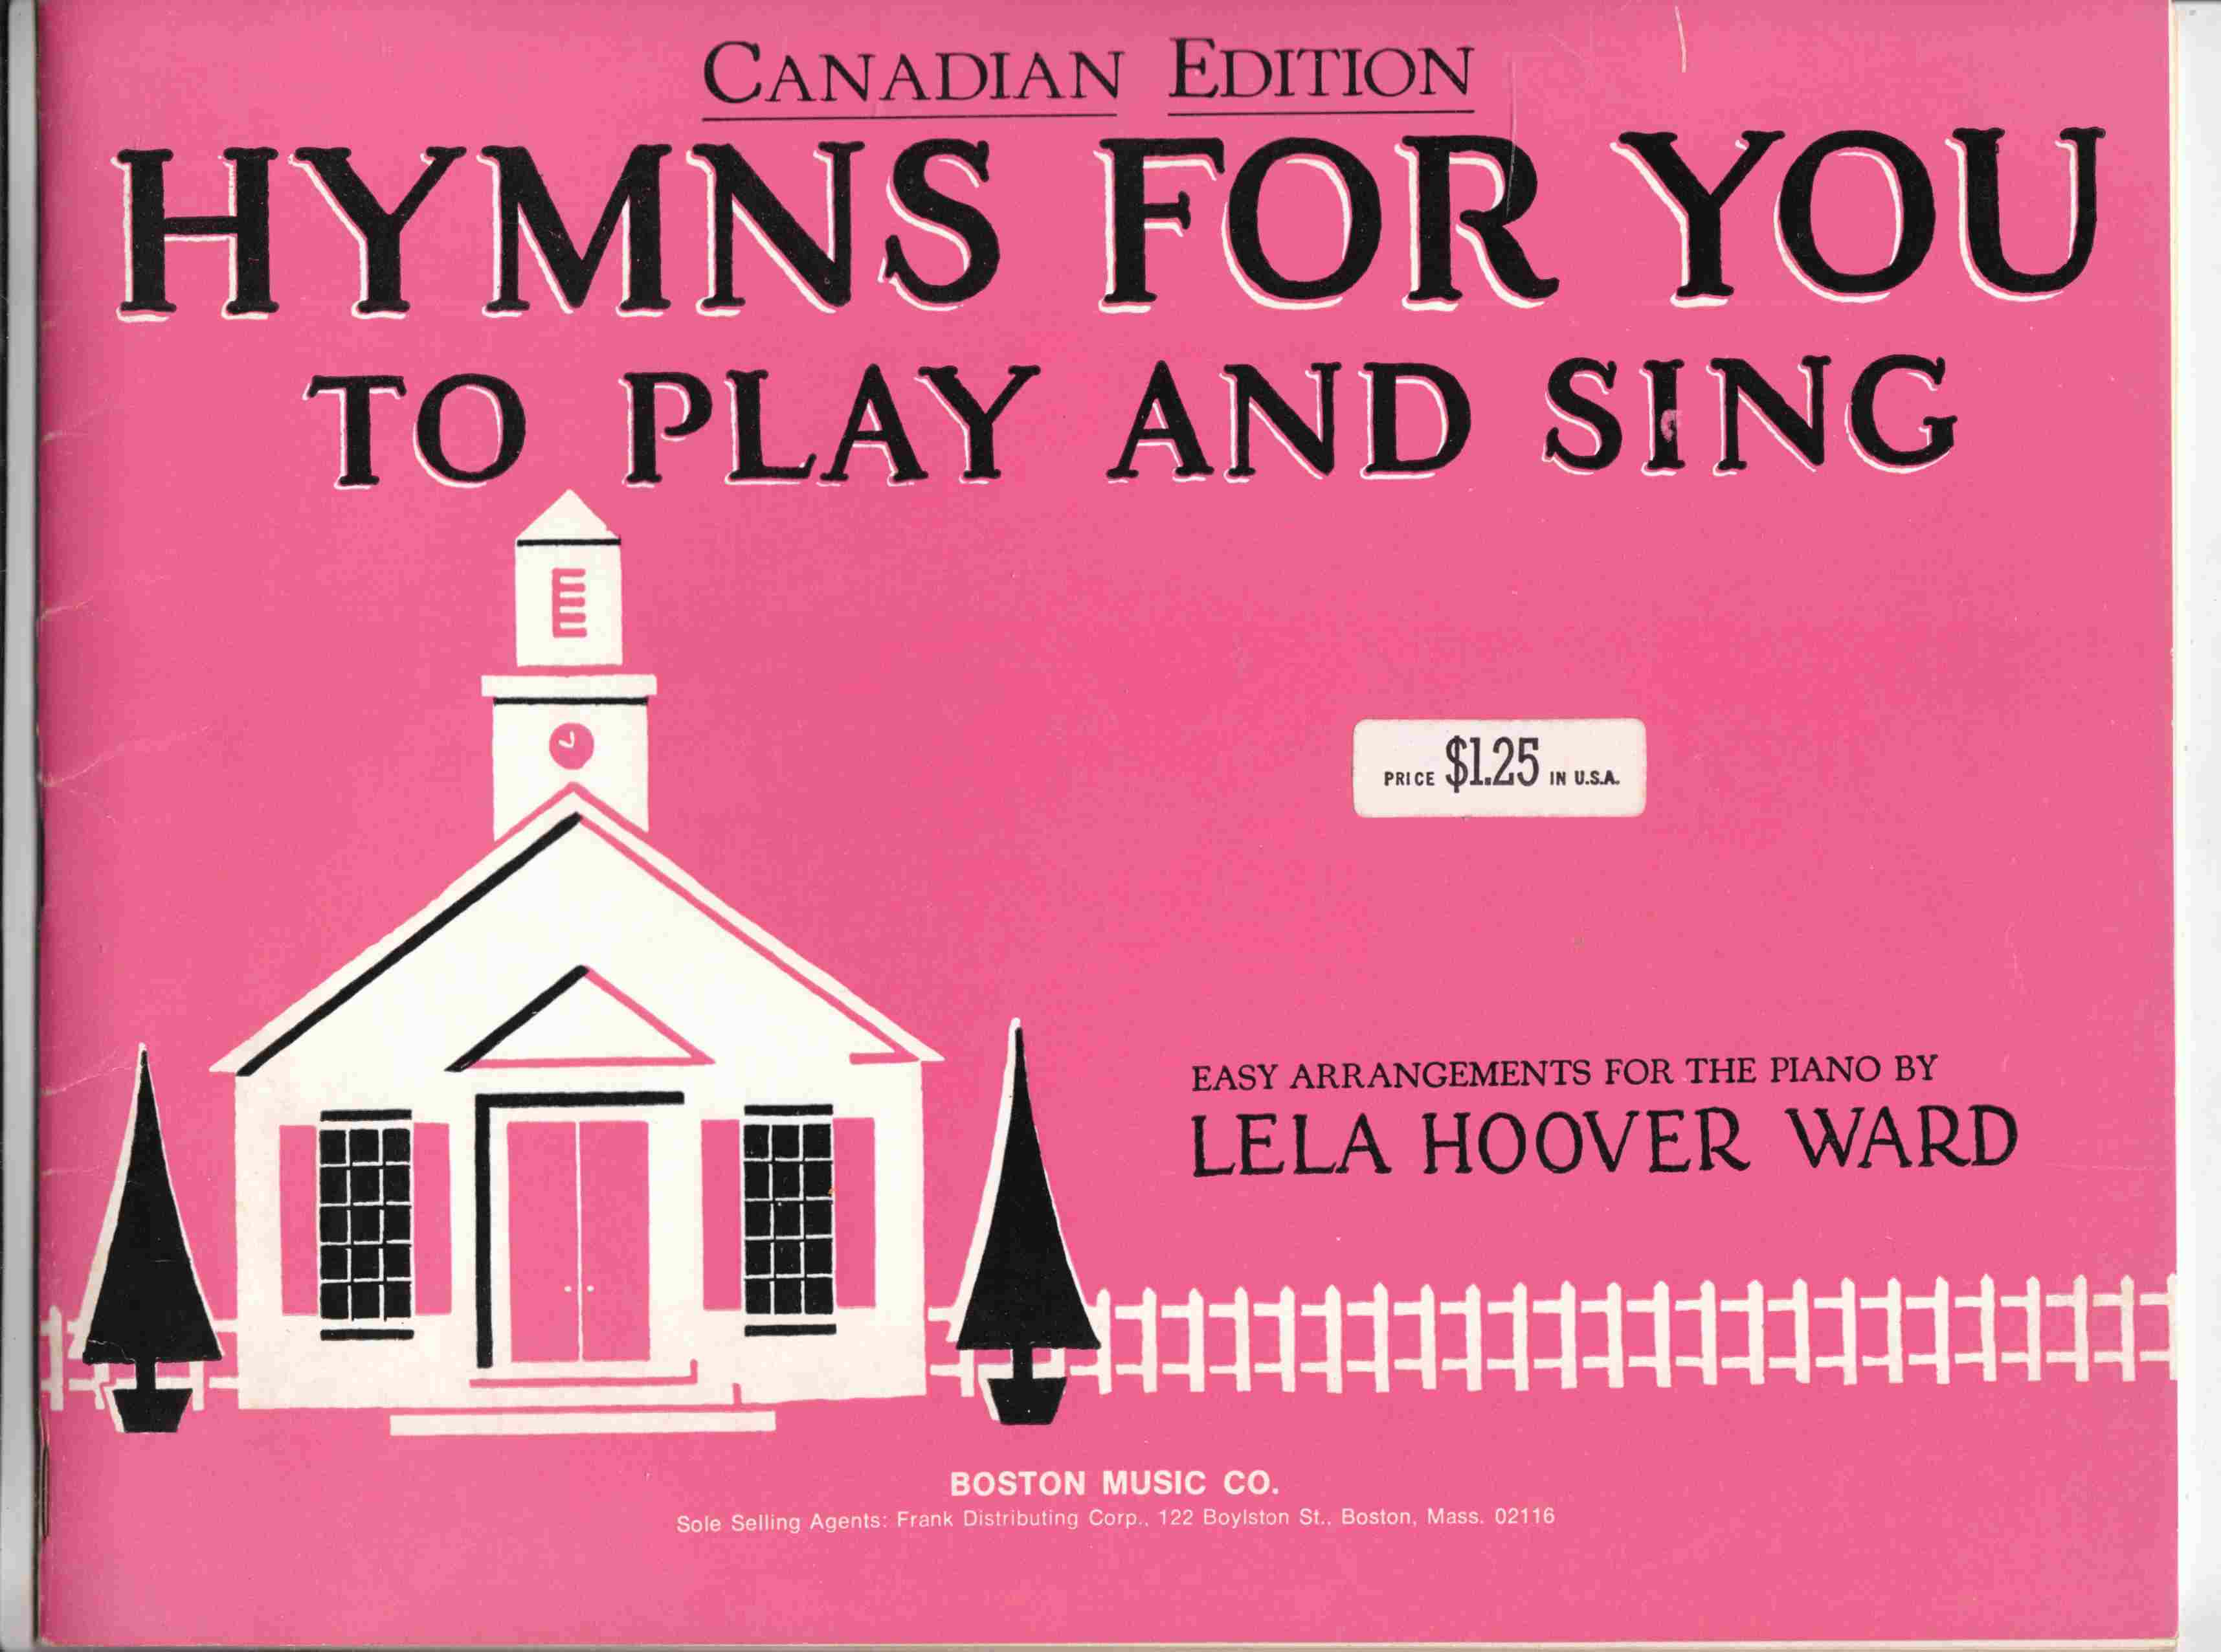 Image for Hymns for You to Play and Sing Canadian Edition